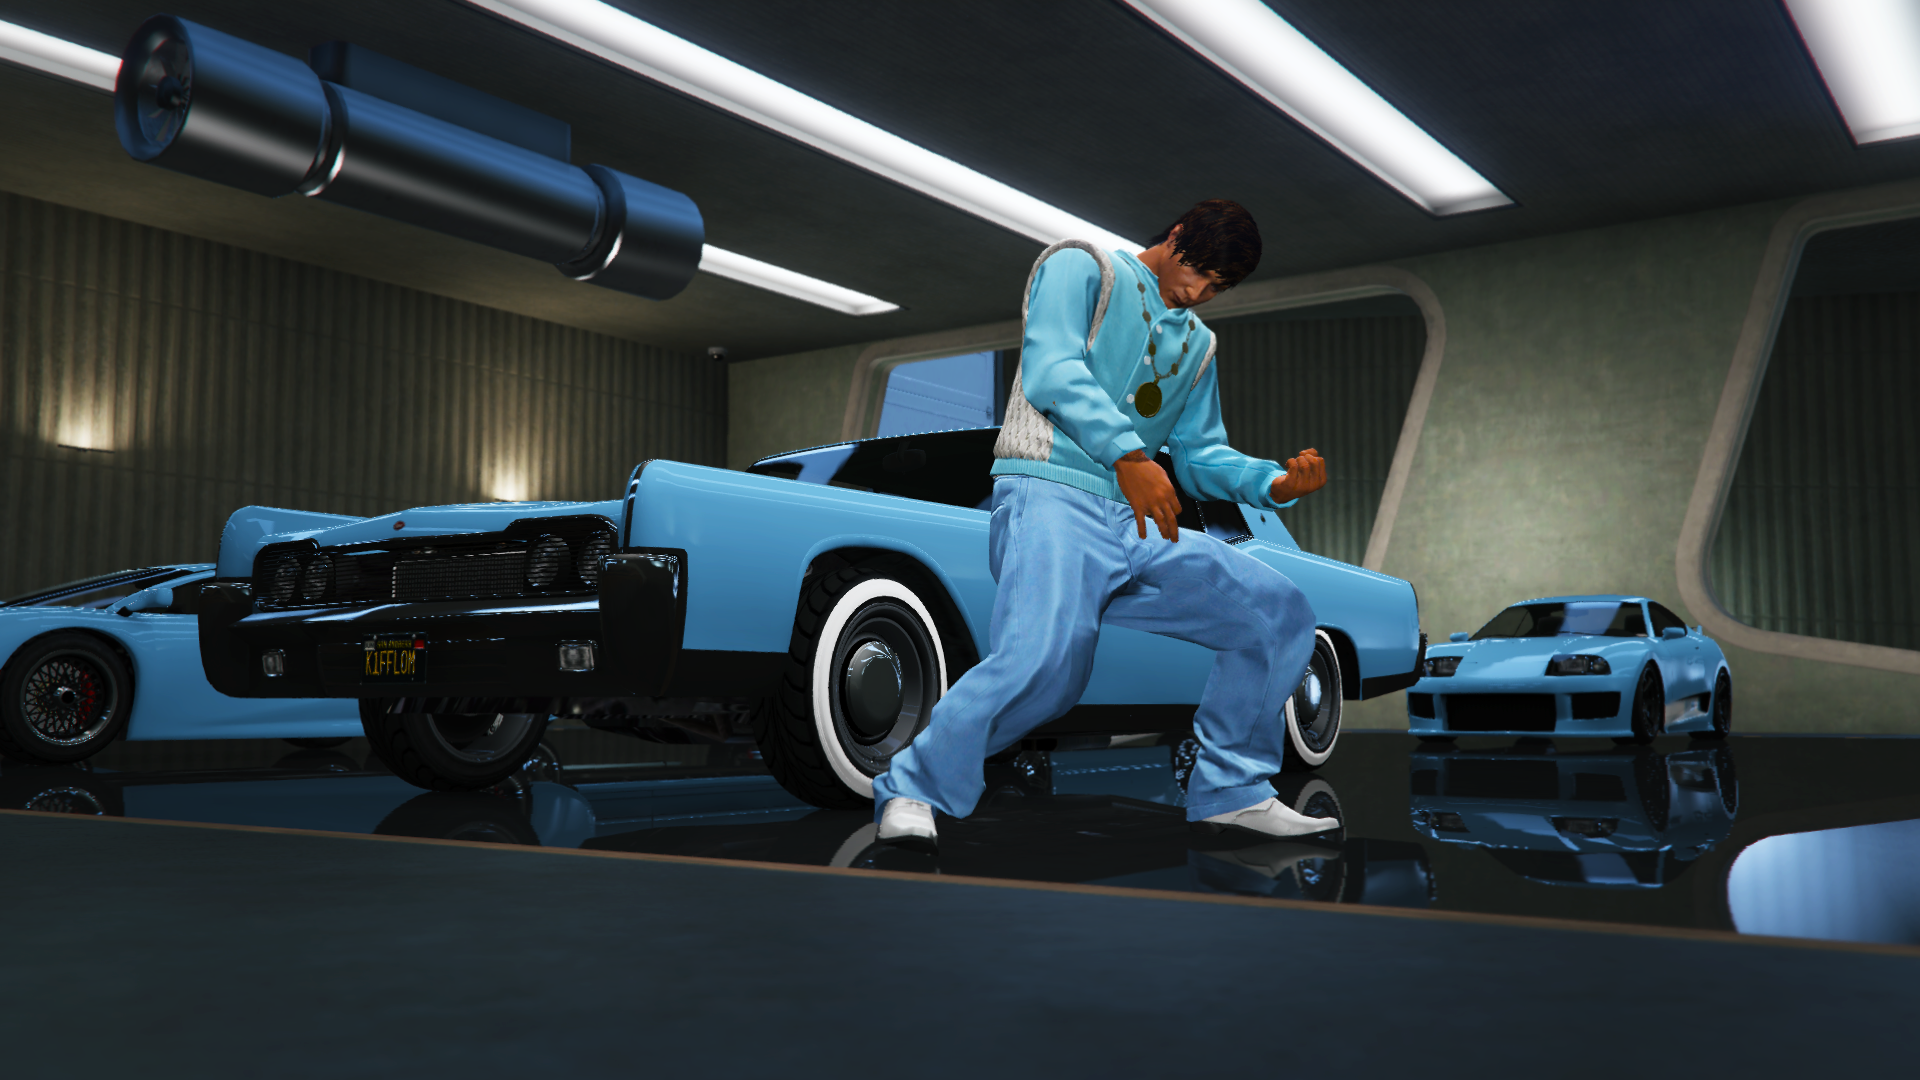 Grand_Theft_Auto_V_69.png